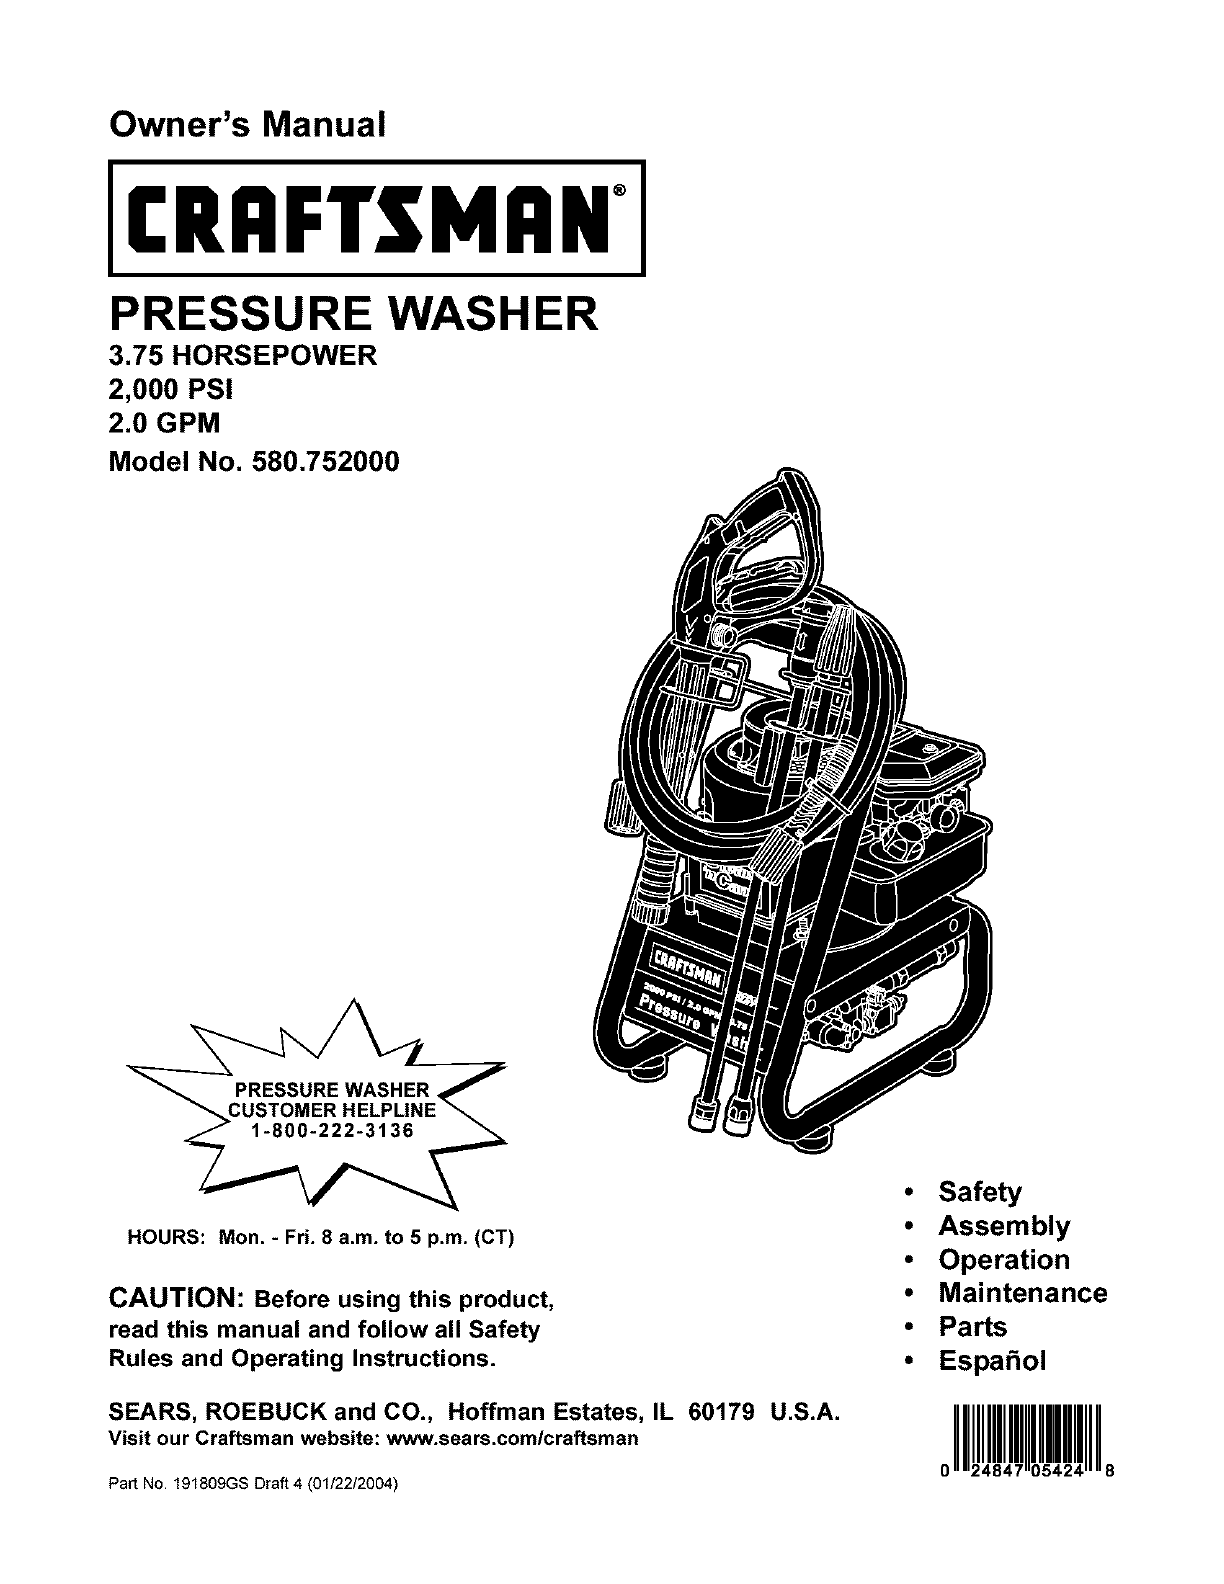 Craftsman Pressure Washer 580.752 User Guide